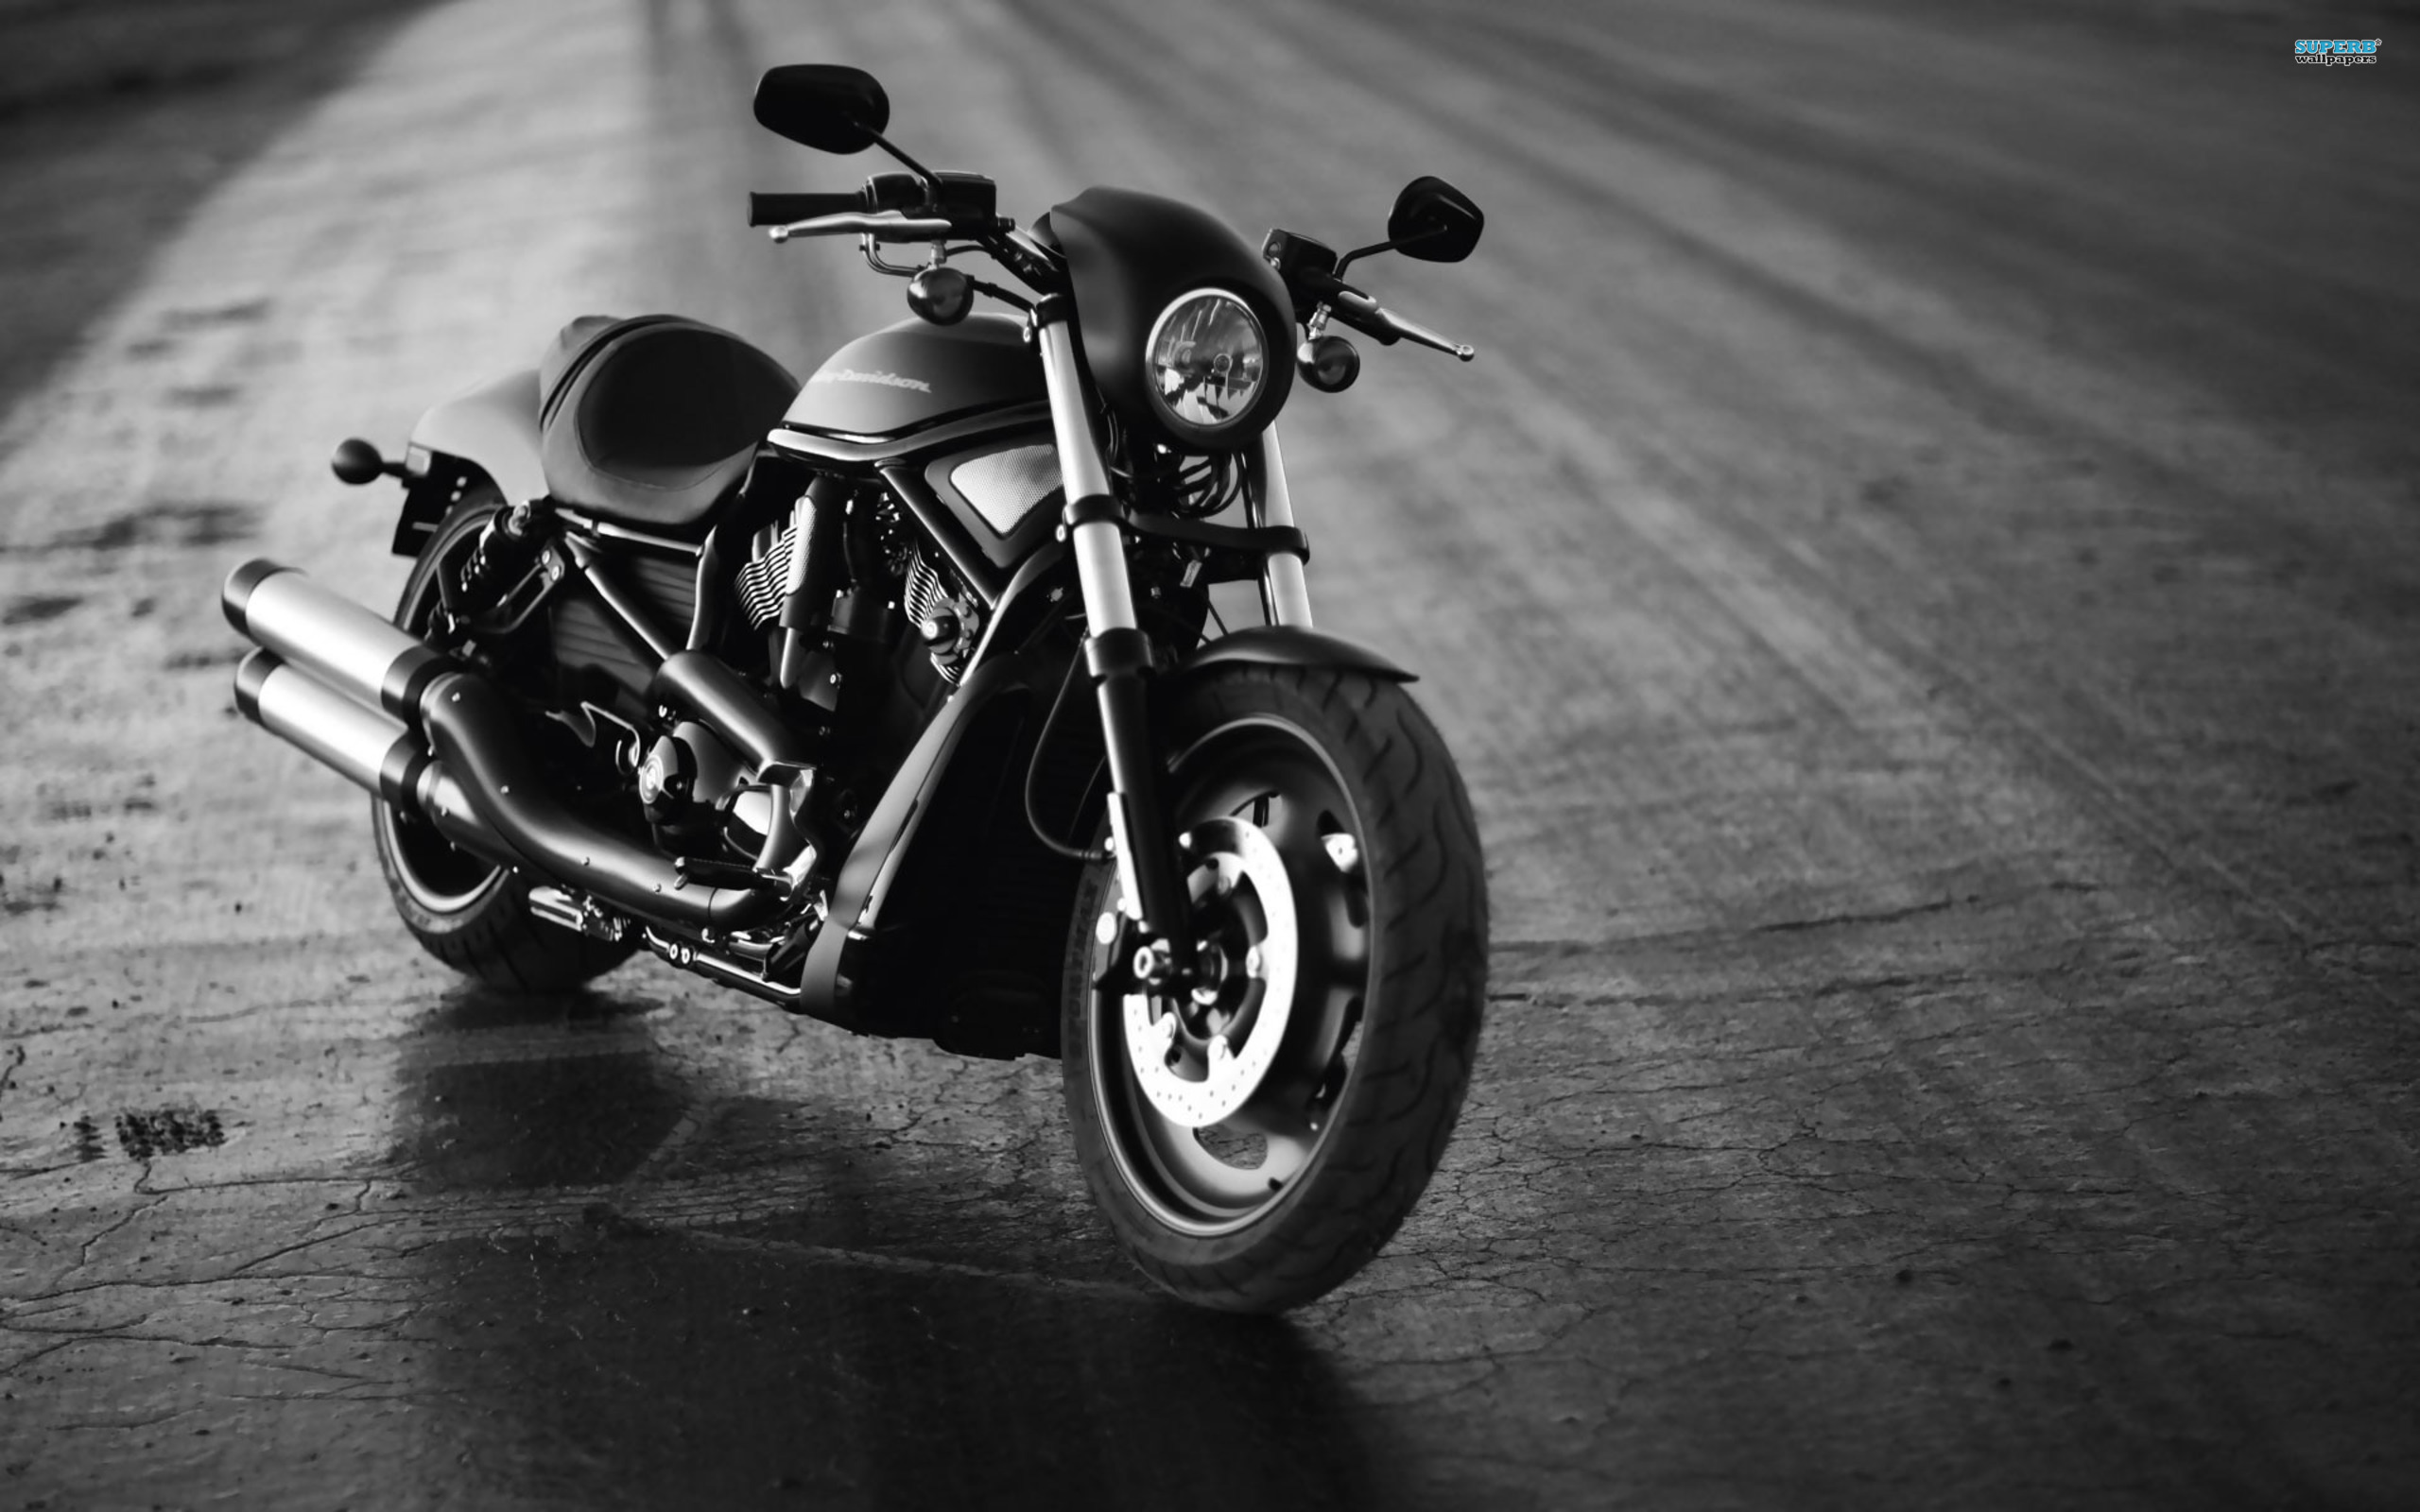 harley-davidson full hd wallpaper and background image | 2560x1600